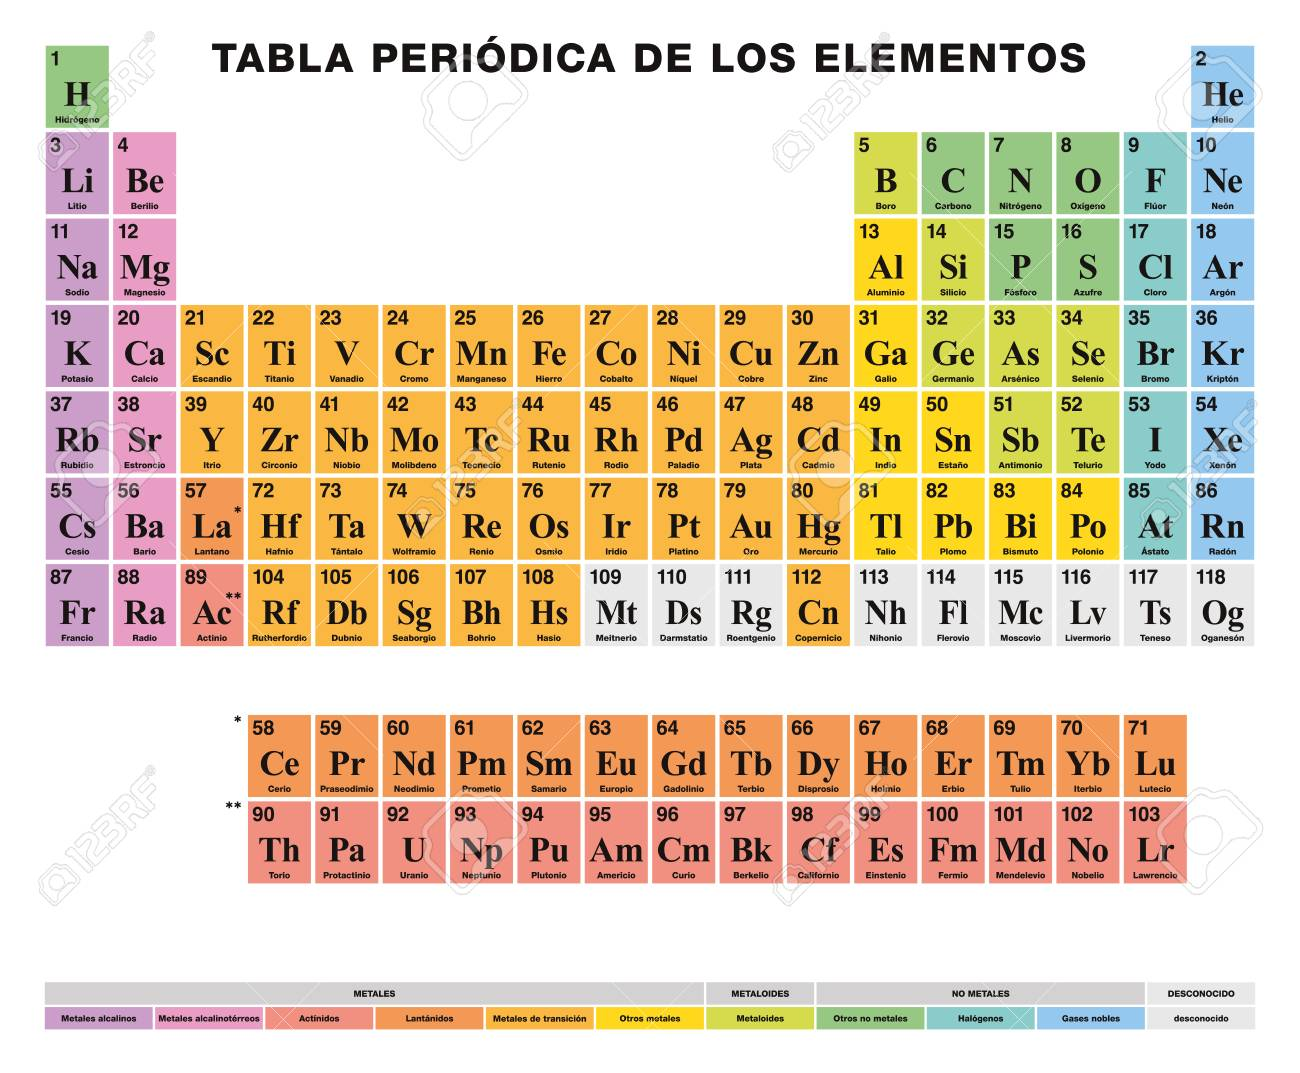 Periodic table of the elements spanish labeling tabular periodic table of the elements spanish labeling tabular arrangement of 118 chemical elements urtaz Images